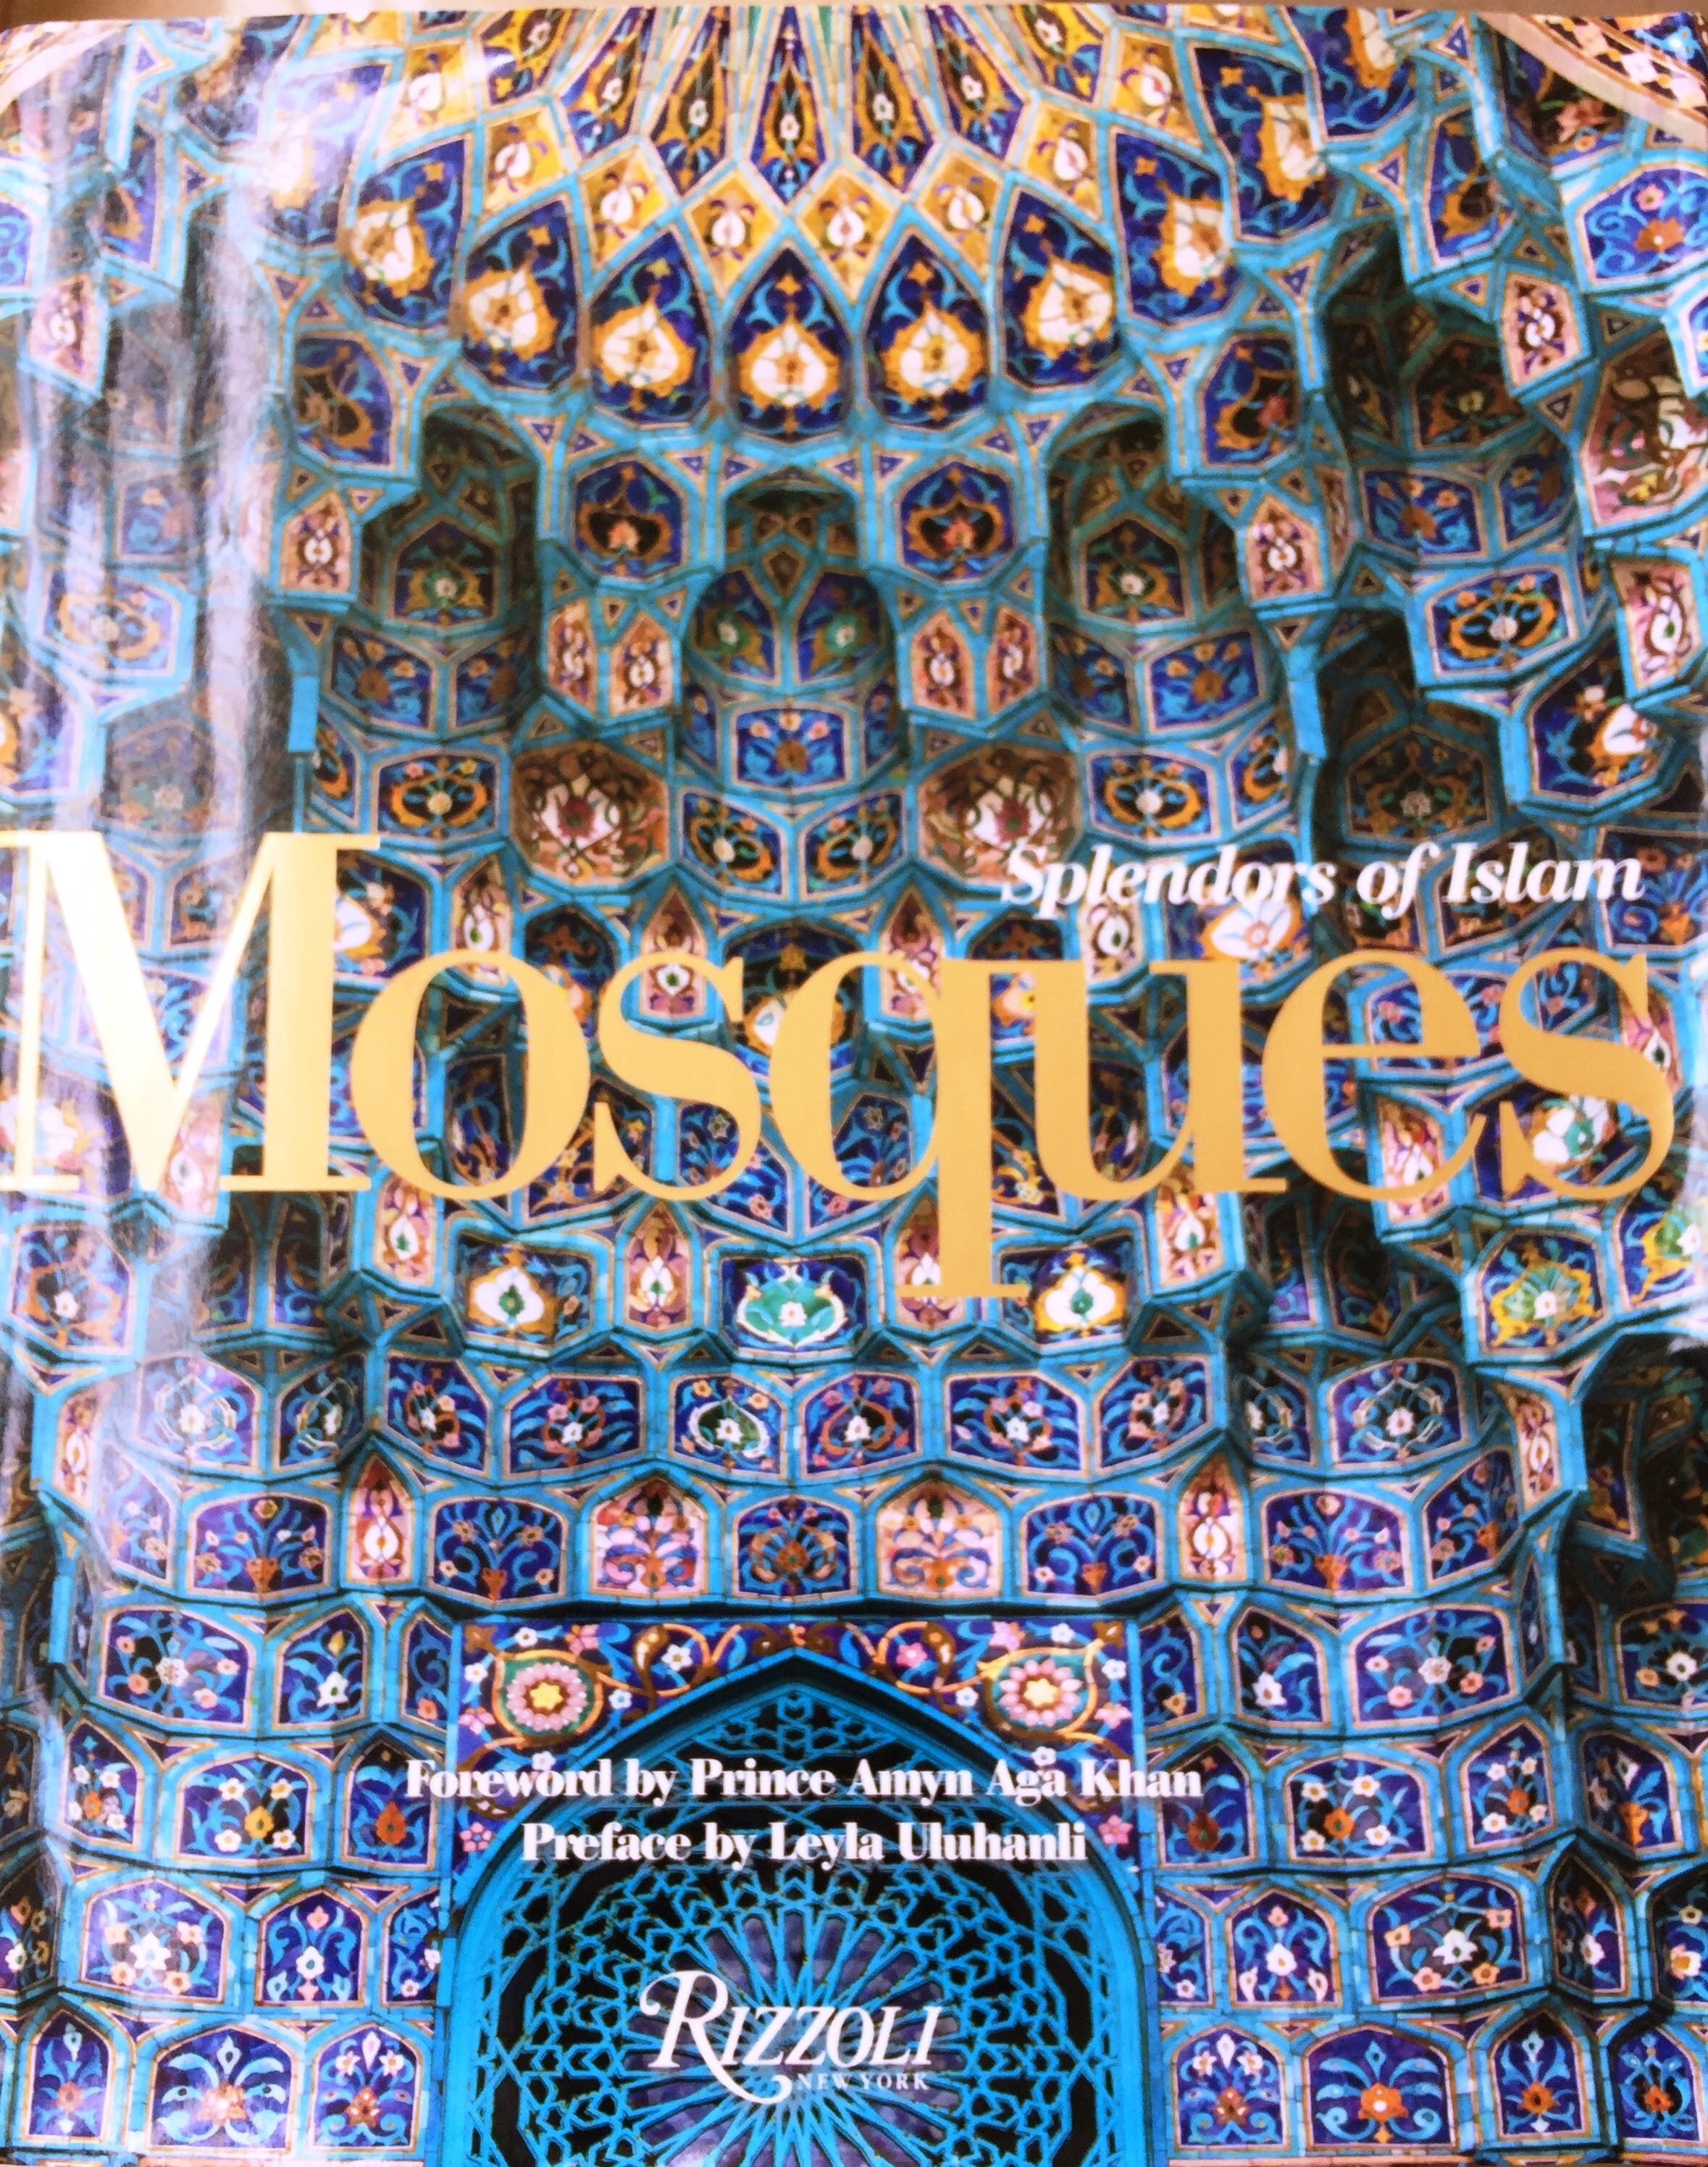 The book is a Rizzoli New York publication and Prince Amyn Aga Khan has penned its foreword. (Supplied)